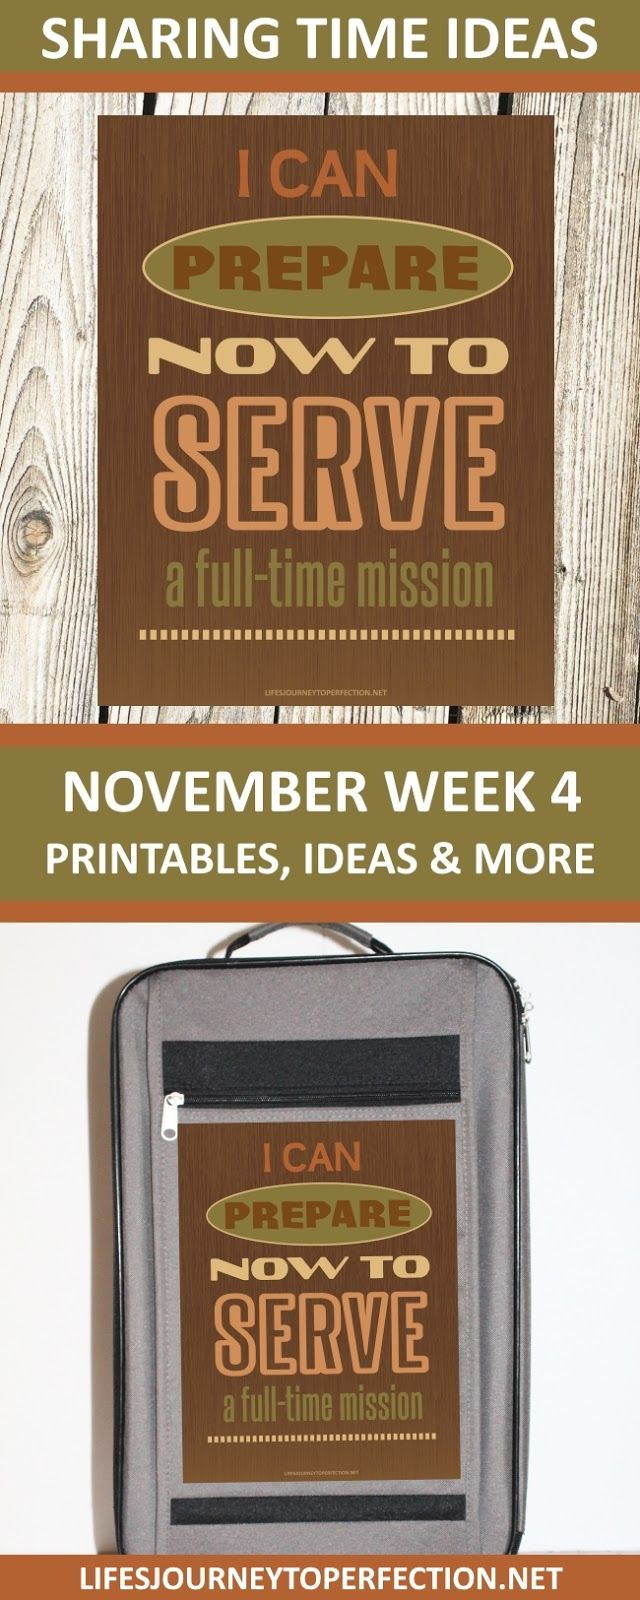 2017 Sharing Time Ideas for November Week 4: I can prepare now to serve a full-time mission.